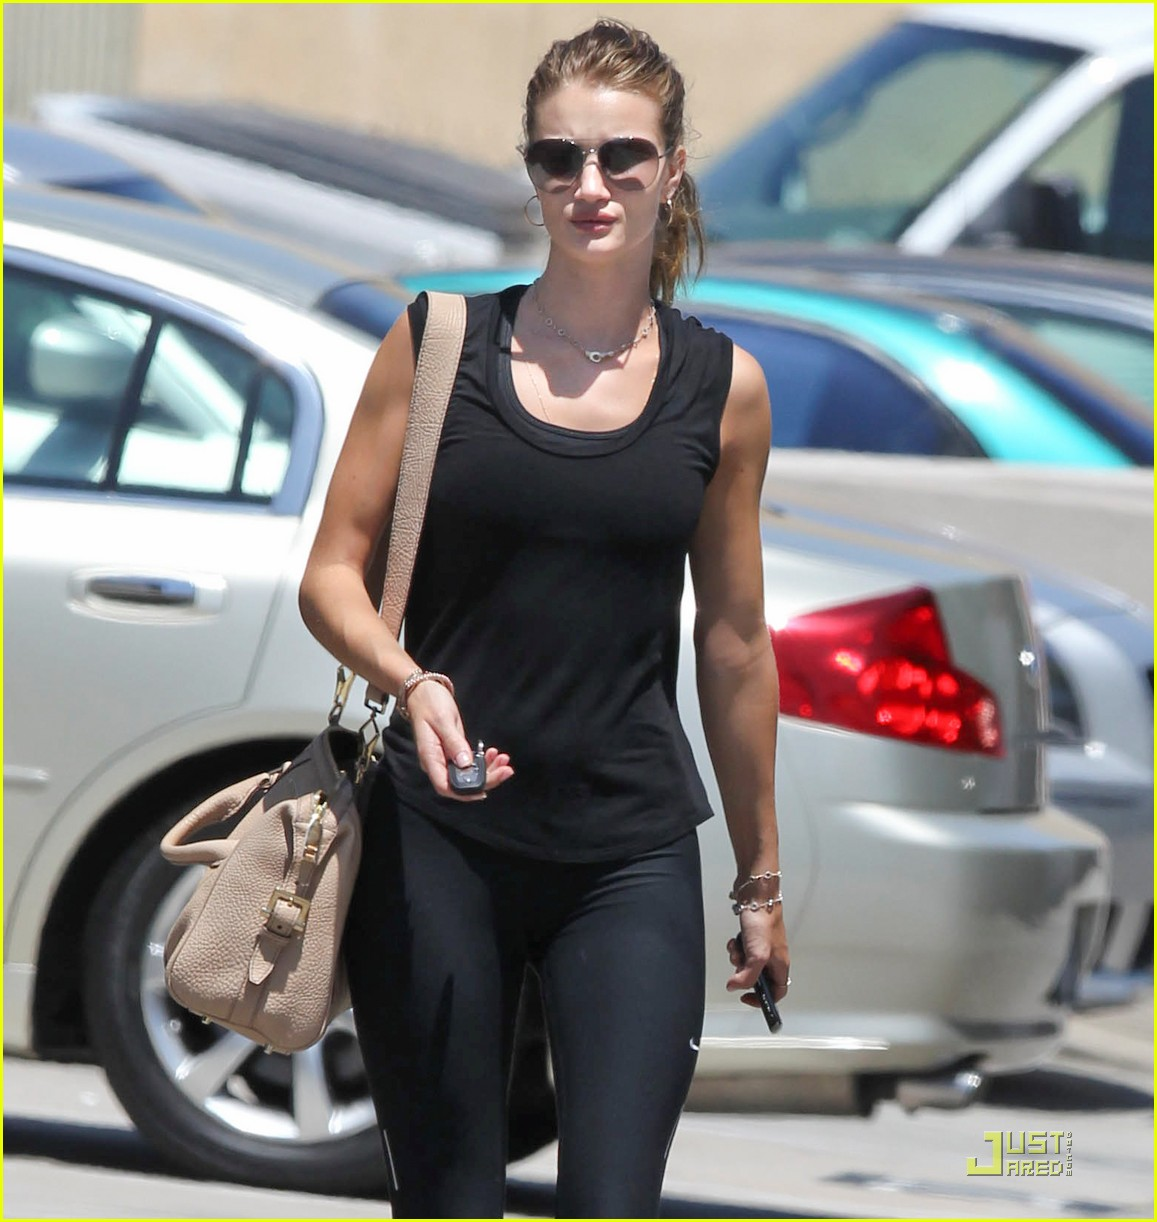 Full Sized Photo of rosie huntington whiteley gym 02 | Photo 2552515 ... Rosie Huntington Whiteley